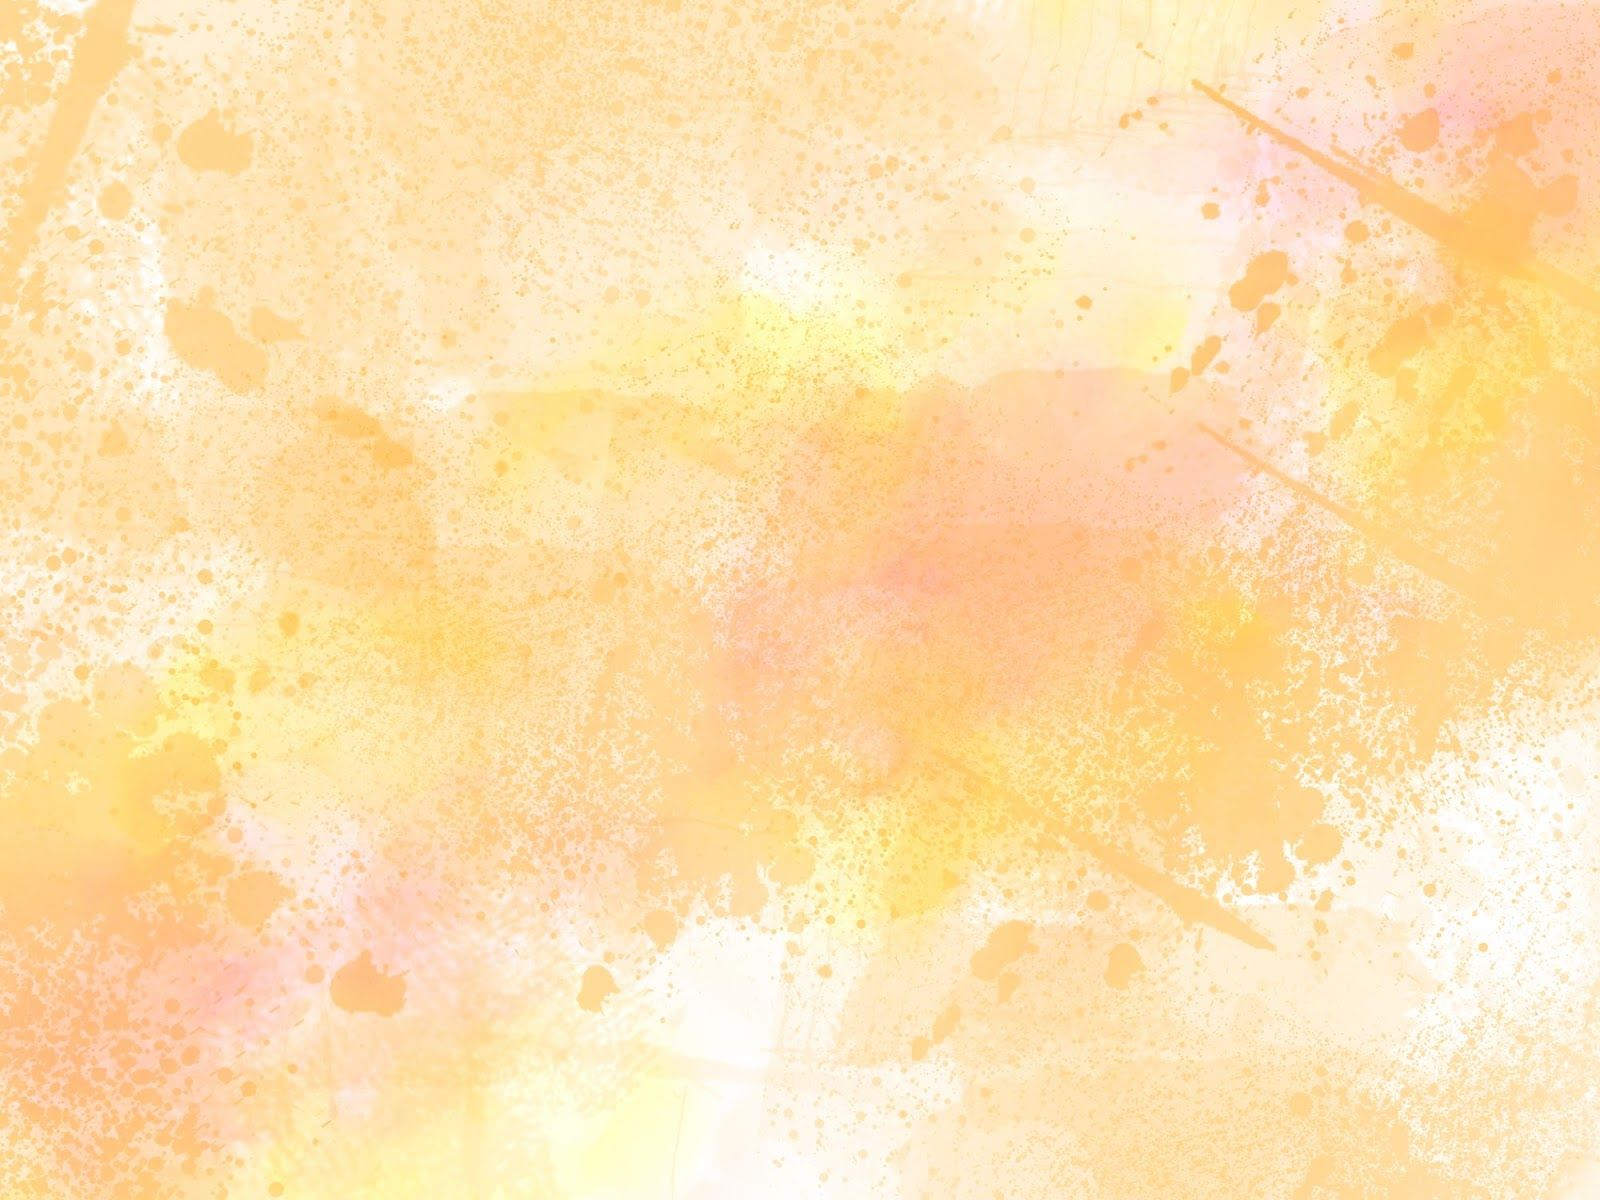 Wallpaper Watercolor Designs Watercolor Background Watercolor